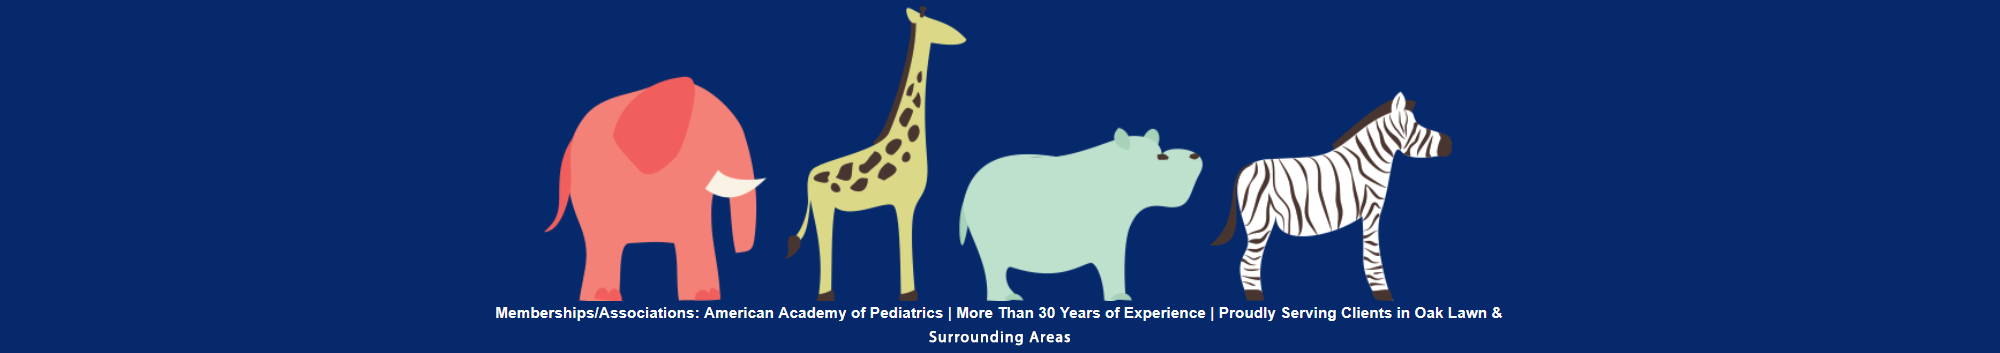 American Academy of Pediatrics Member